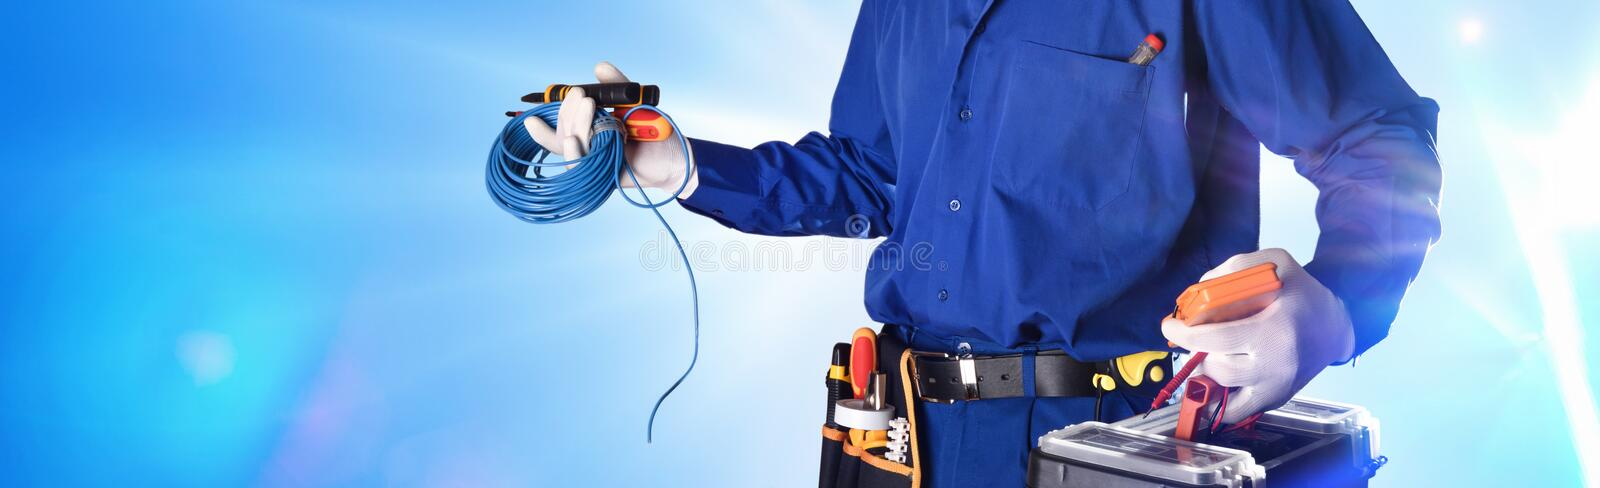 Electrician with tools and electrical equipment isolated with lights. Background with uniformed electrician with tools and electrical equipment and blue stock photo